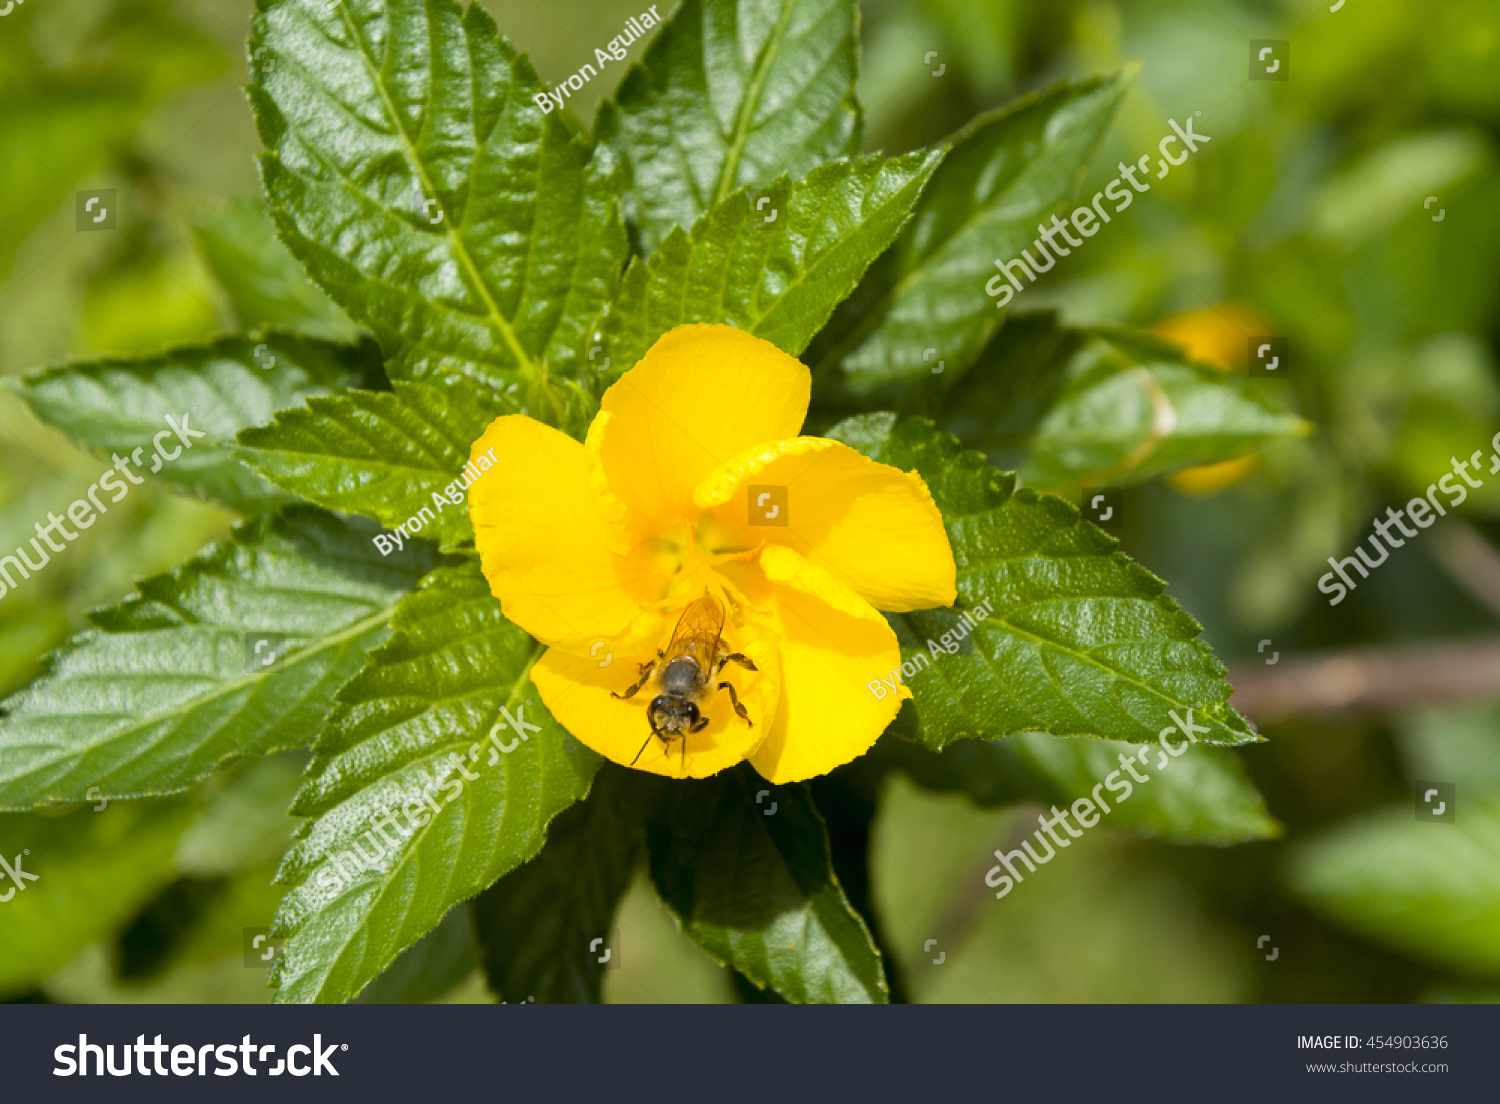 Bee On Yellow Sage Rose Flower Stock Photo Edit Now 454903636